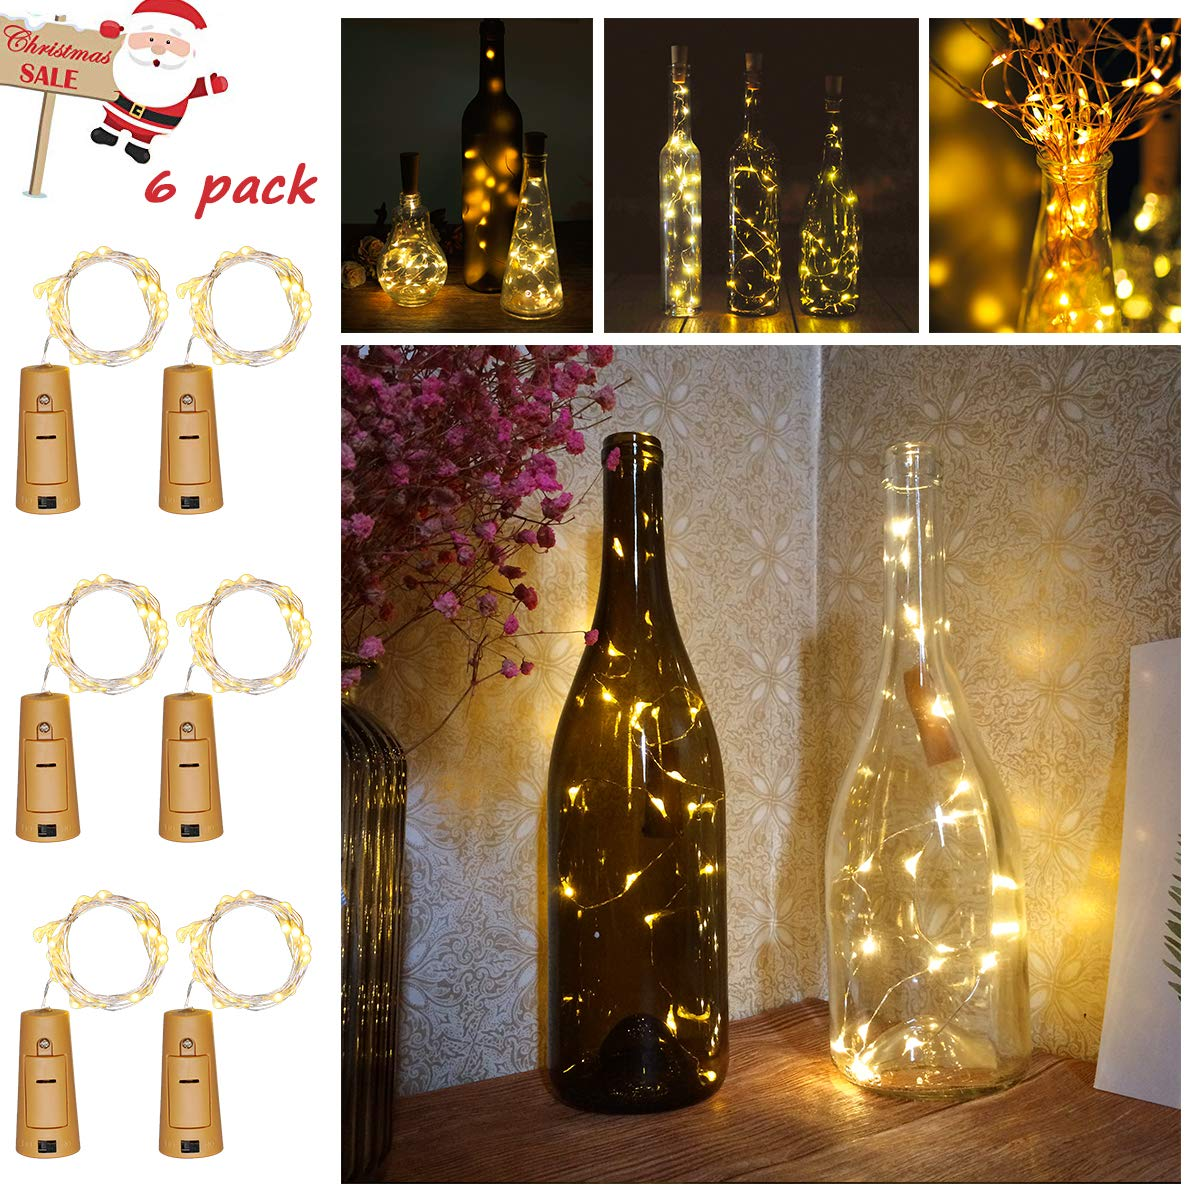 YOUNGFORCE Bottle Lights 6 Packs Cork Shape Bar String LED Lights for Wine Bottle Glass Decor Copper Wire DIY Lights with Screwdriver for Party Warm White 2M 7.2 Ft.